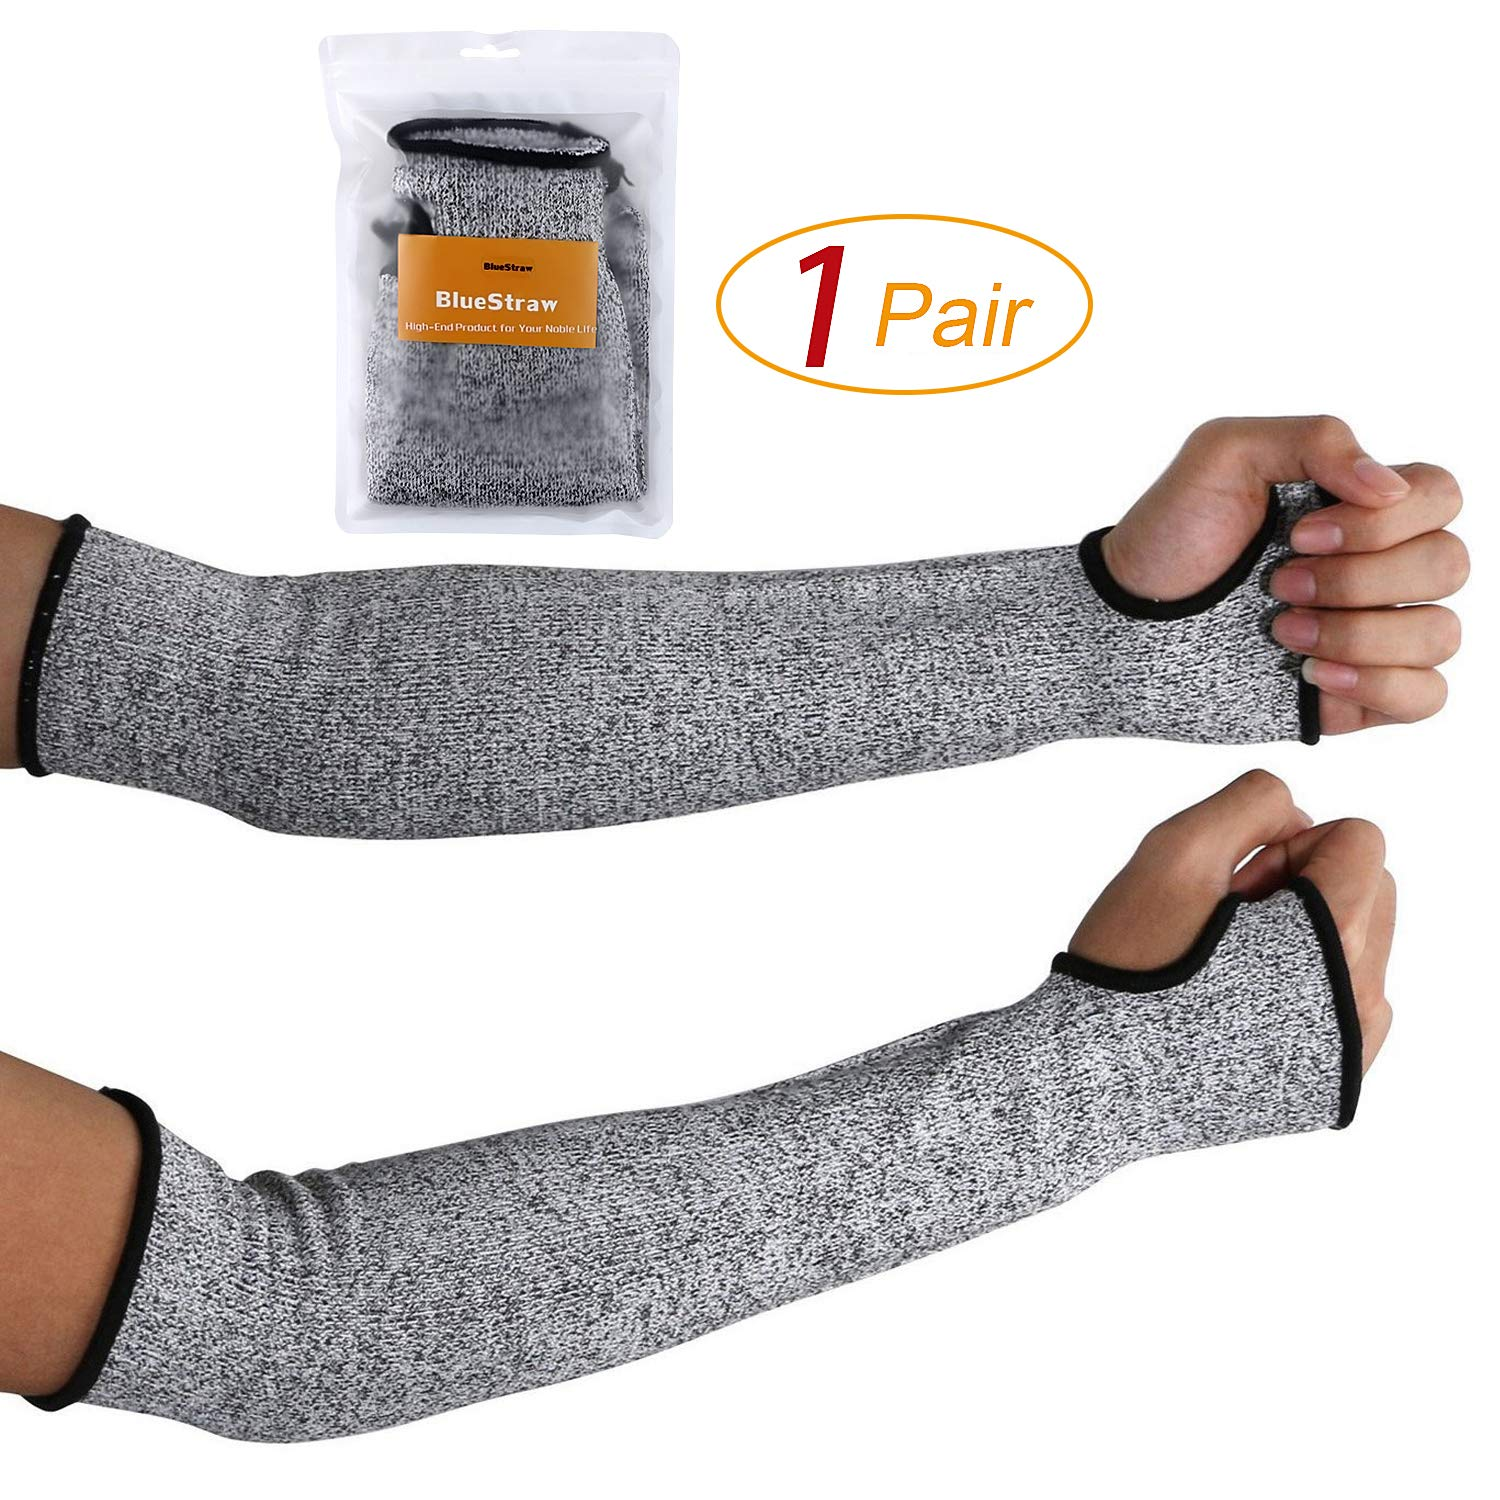 Cut Resistant Sleeves 14-Inch Arm Protection Knit Sleeves - Level 5 Protection, Slash Resistant Sleeves with Thumb Slot Helps Prevent Scrapes, Scratches Skin Irritations UV-Protection, 1 Pair by BlueStraw